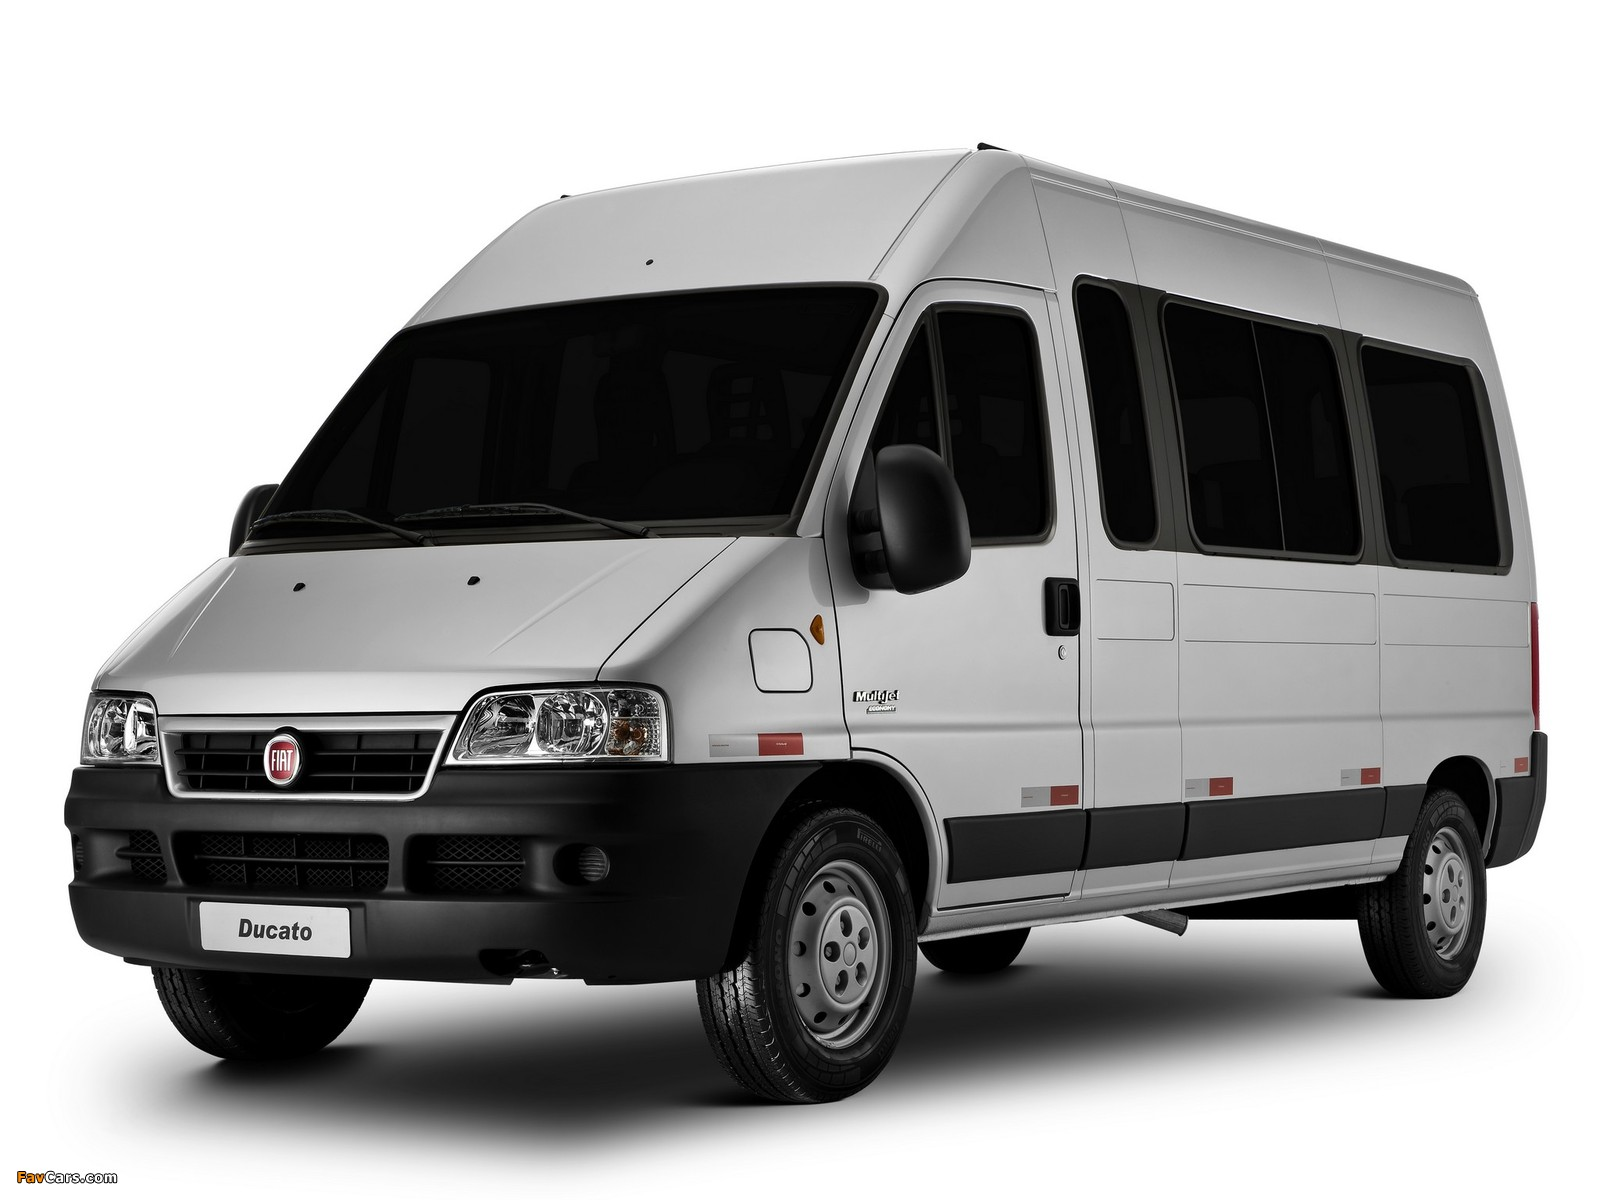 fiat ducato multijet economy minibus high roof 2010 photos. Black Bedroom Furniture Sets. Home Design Ideas